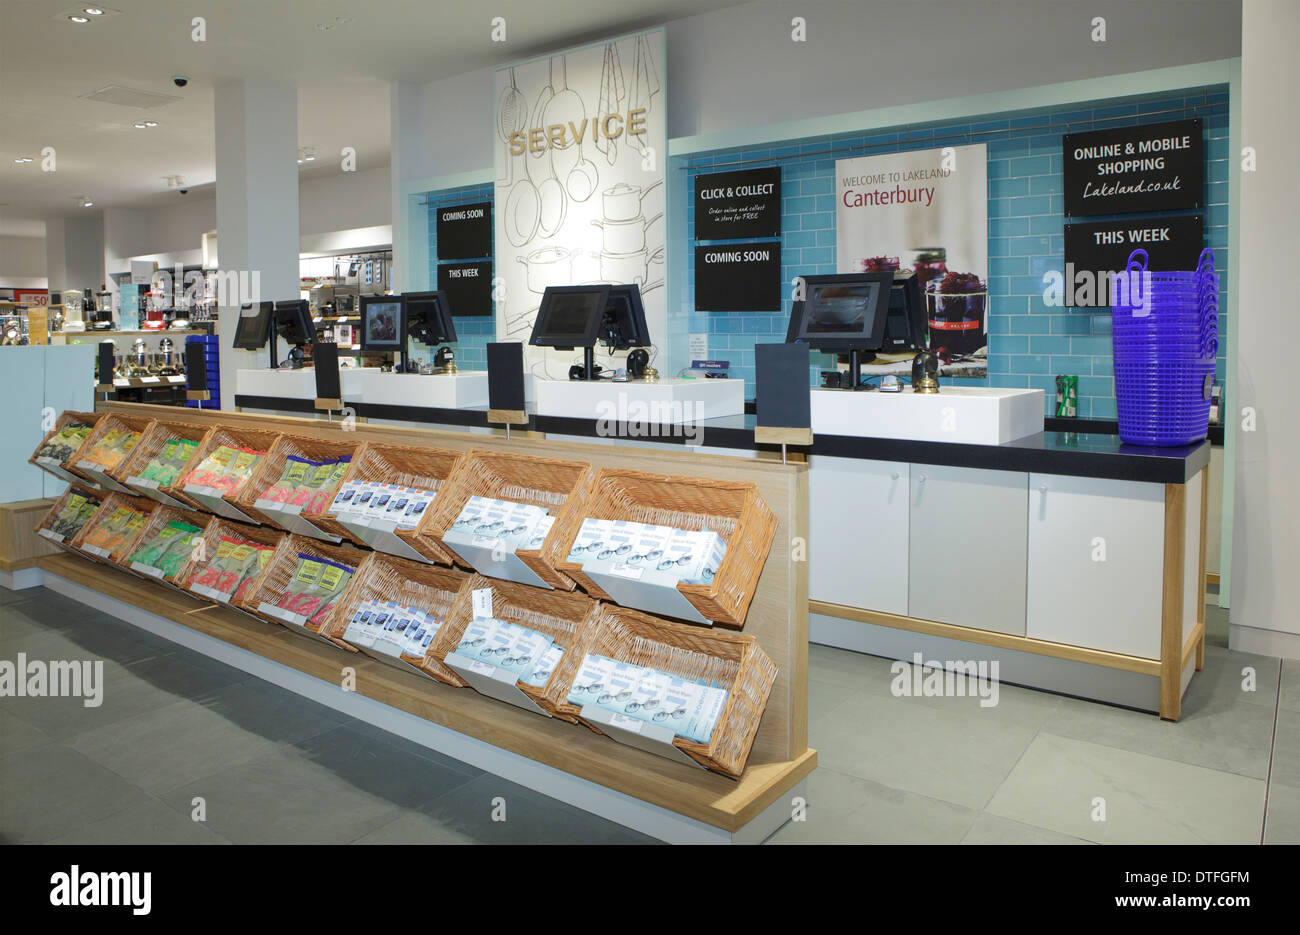 Lakeland Shop Stock Photos & Lakeland Shop Stock Images - Alamy